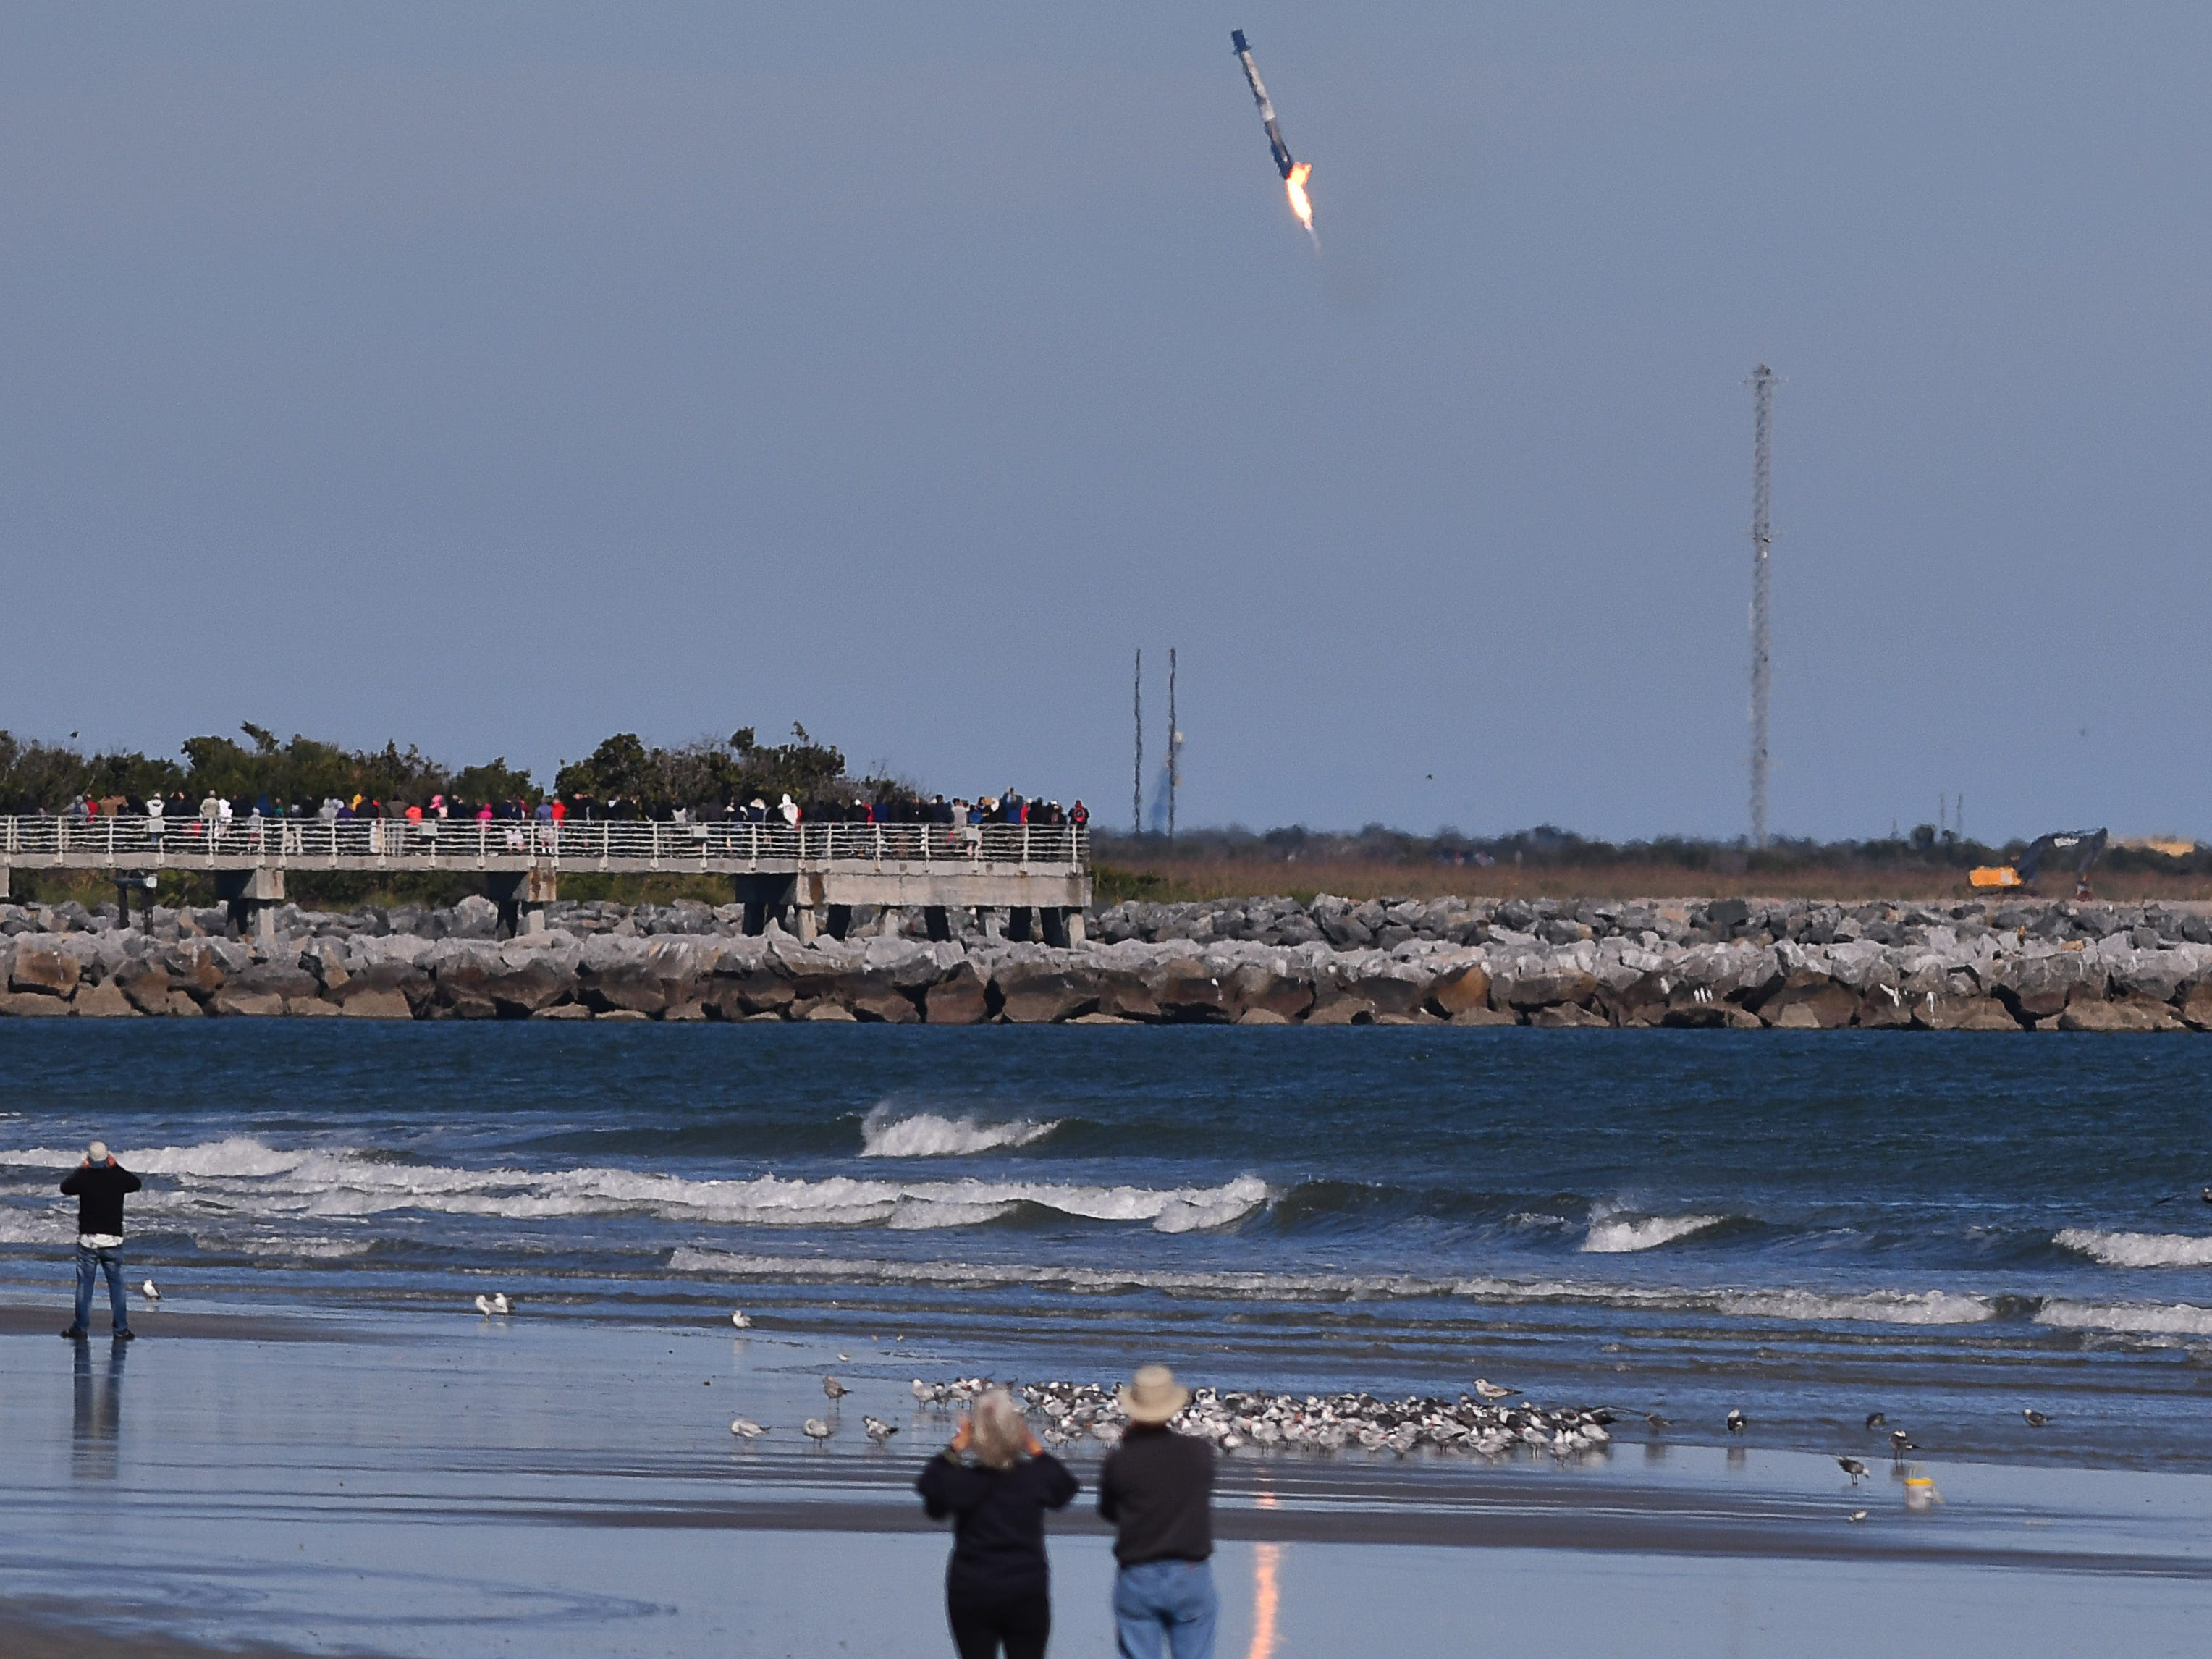 A SpaceX Falcon 9 booster attempts to land at Cape Canaveral Air Force Station, but is unable to on Wednesday, Dec. 5, 2018. The case was attributed to a stuck fin due to a hydraulics issue.